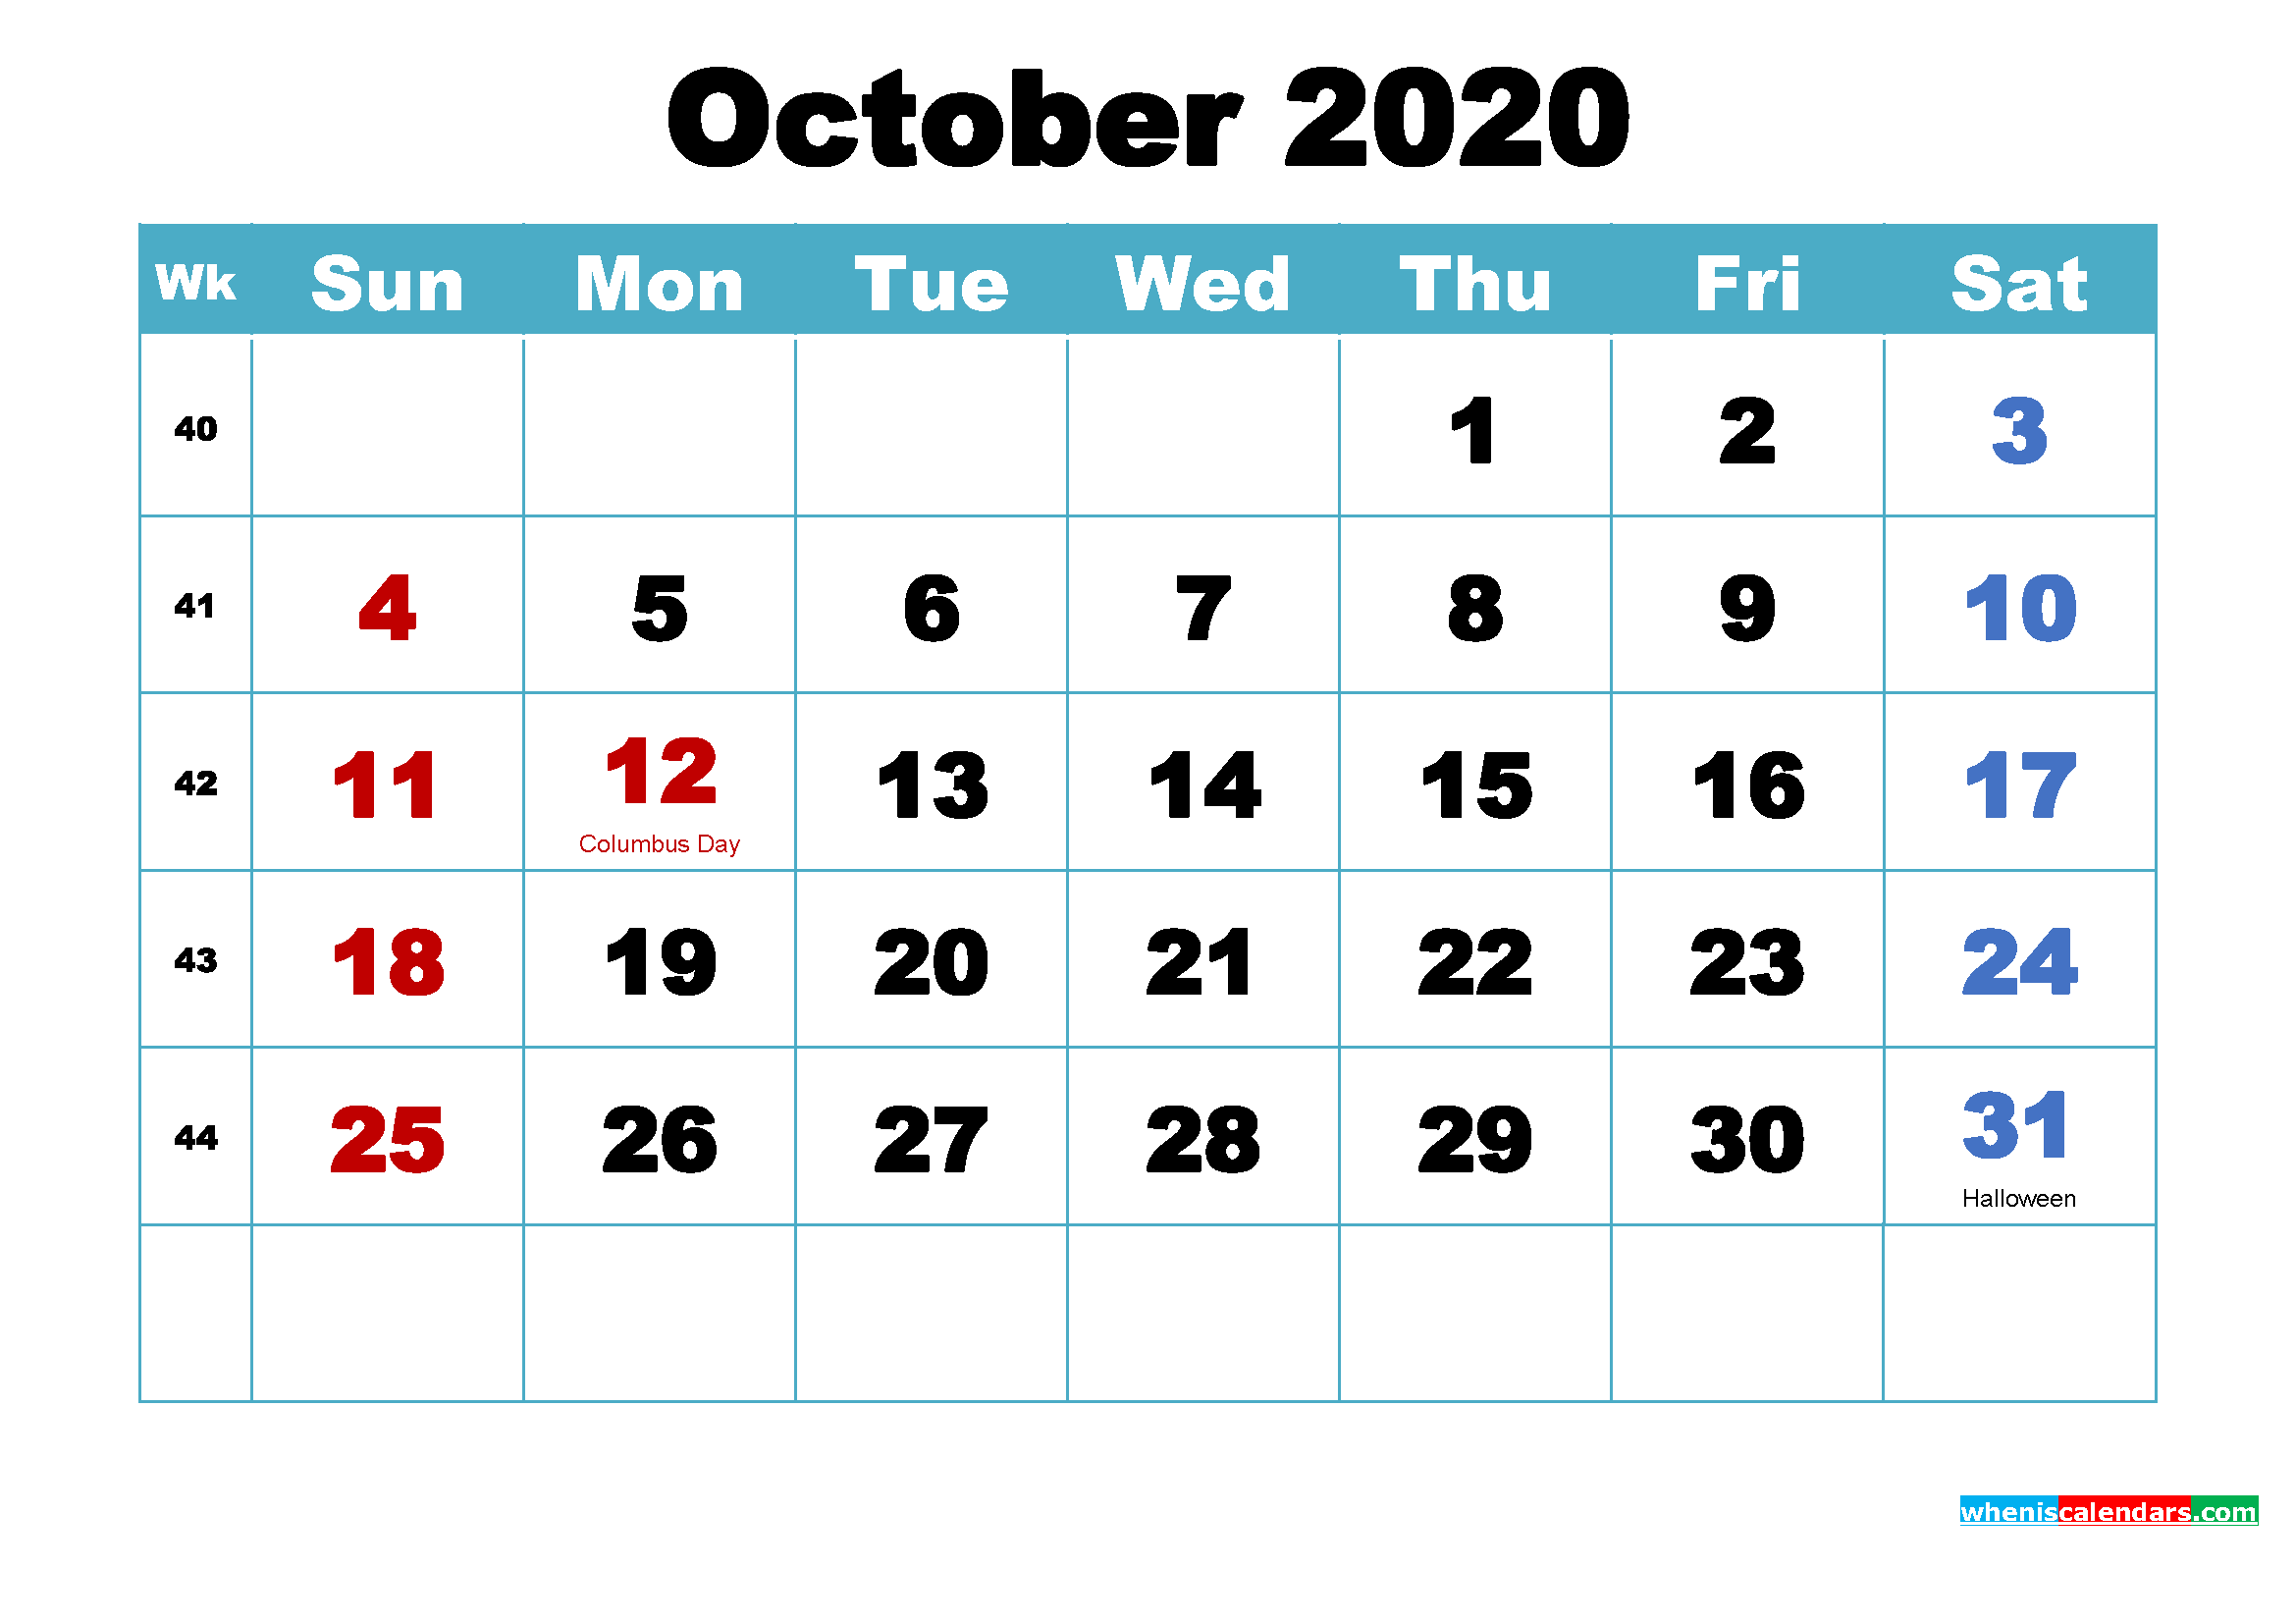 Printable October 2020 Calendar by Month